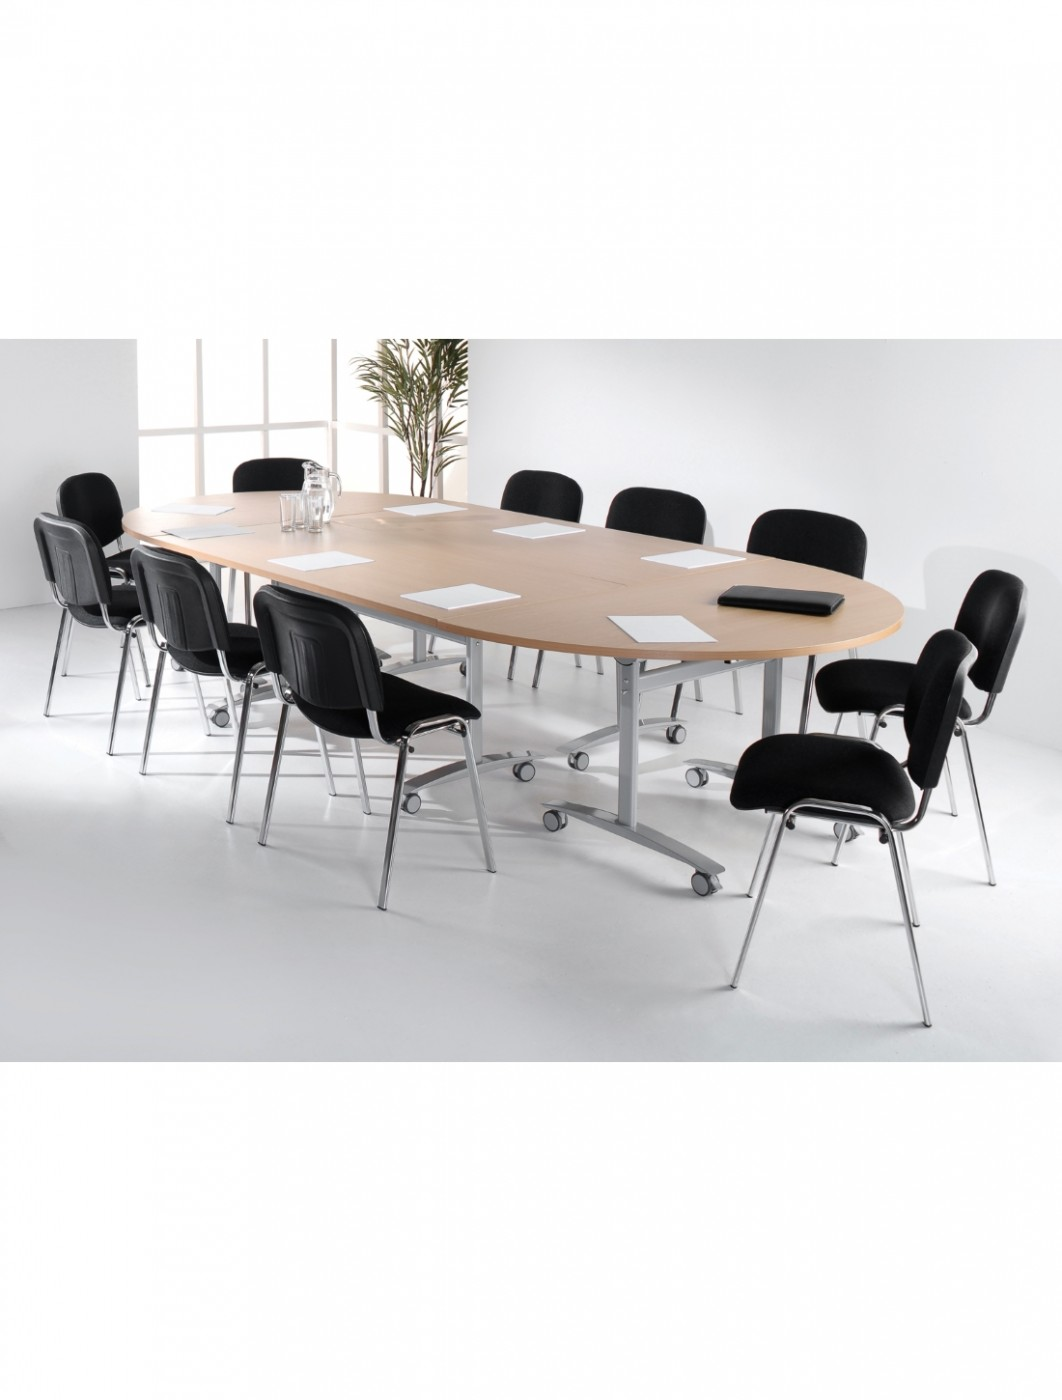 Maple Table - Semi-Circular Deluxe Flip Top Meeting Table 1600mm DFLPS-S-M